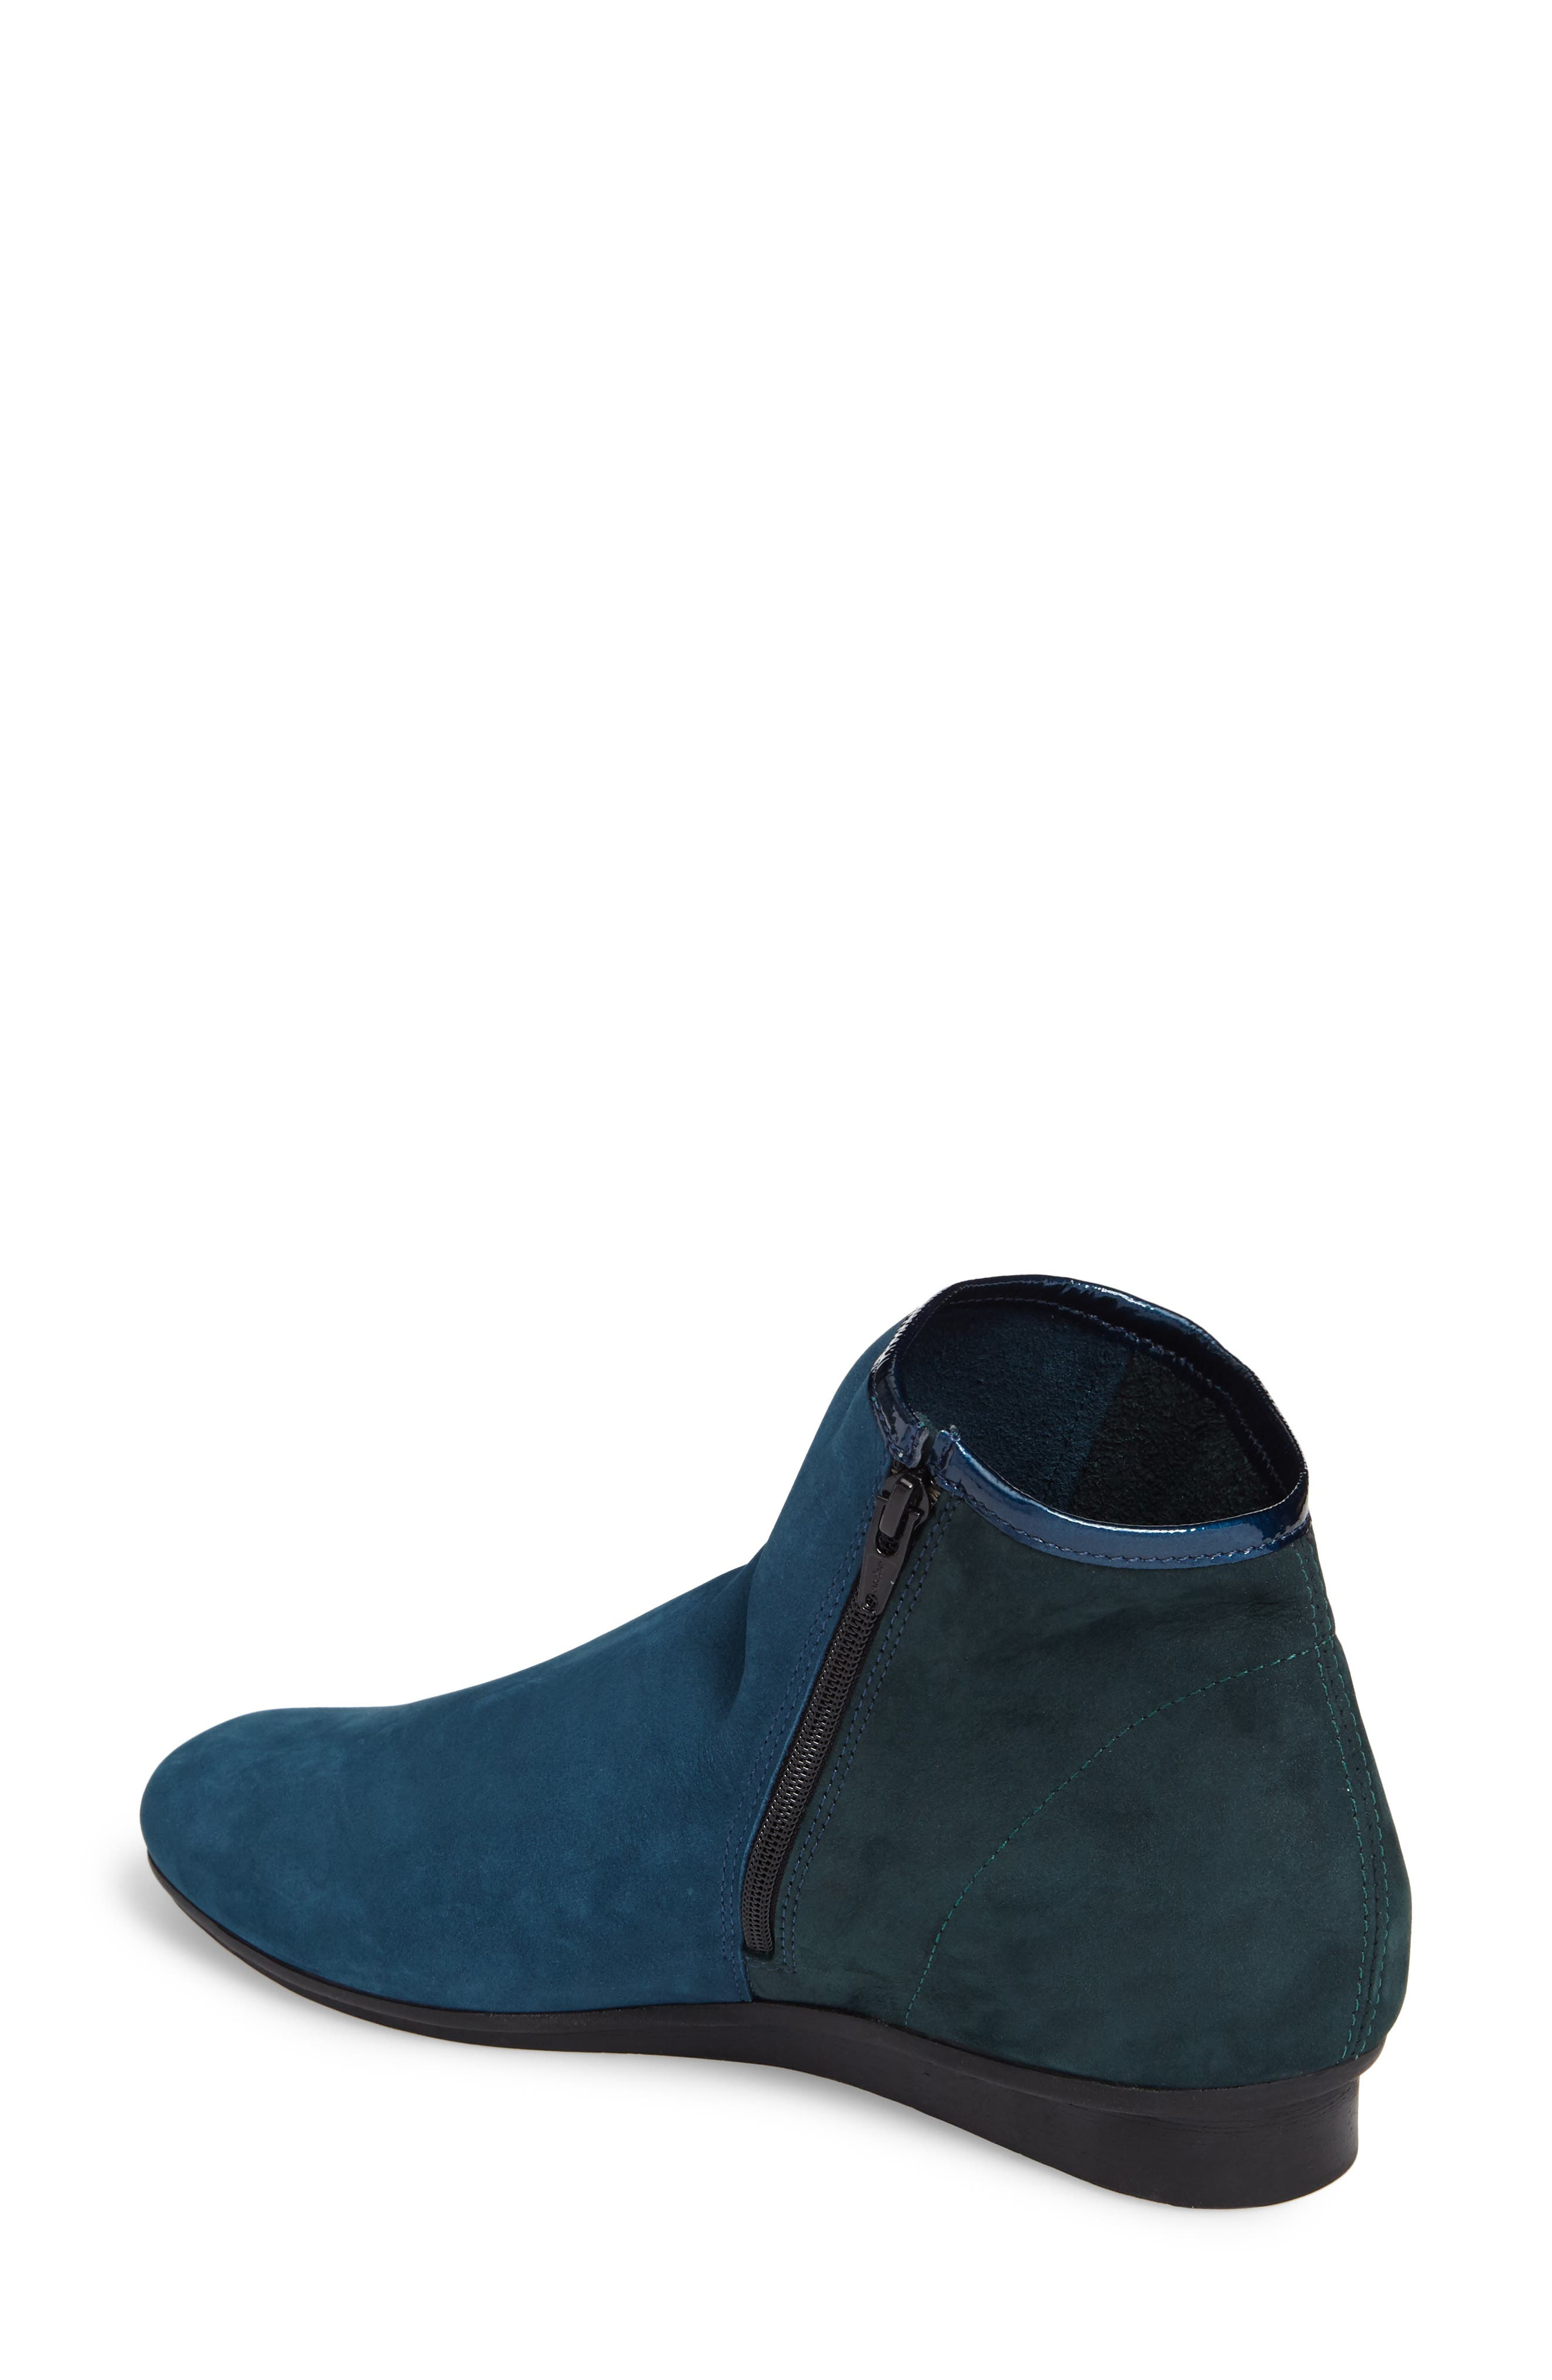 Ninote Bootie,                             Alternate thumbnail 5, color,